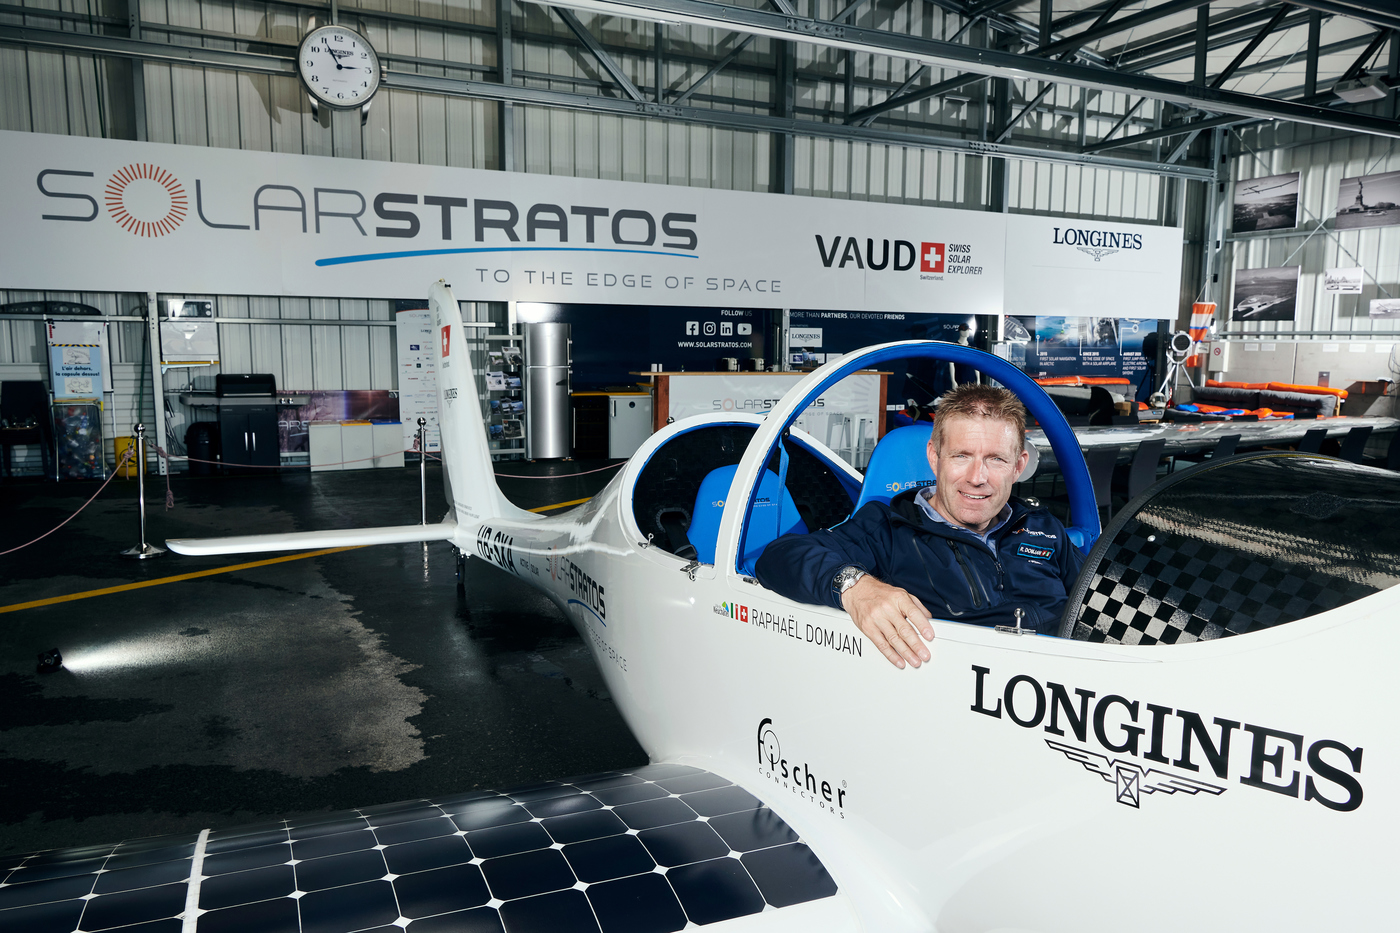 Longines Corporate Event: Longines and SolarStratos take on the solar challenge 2